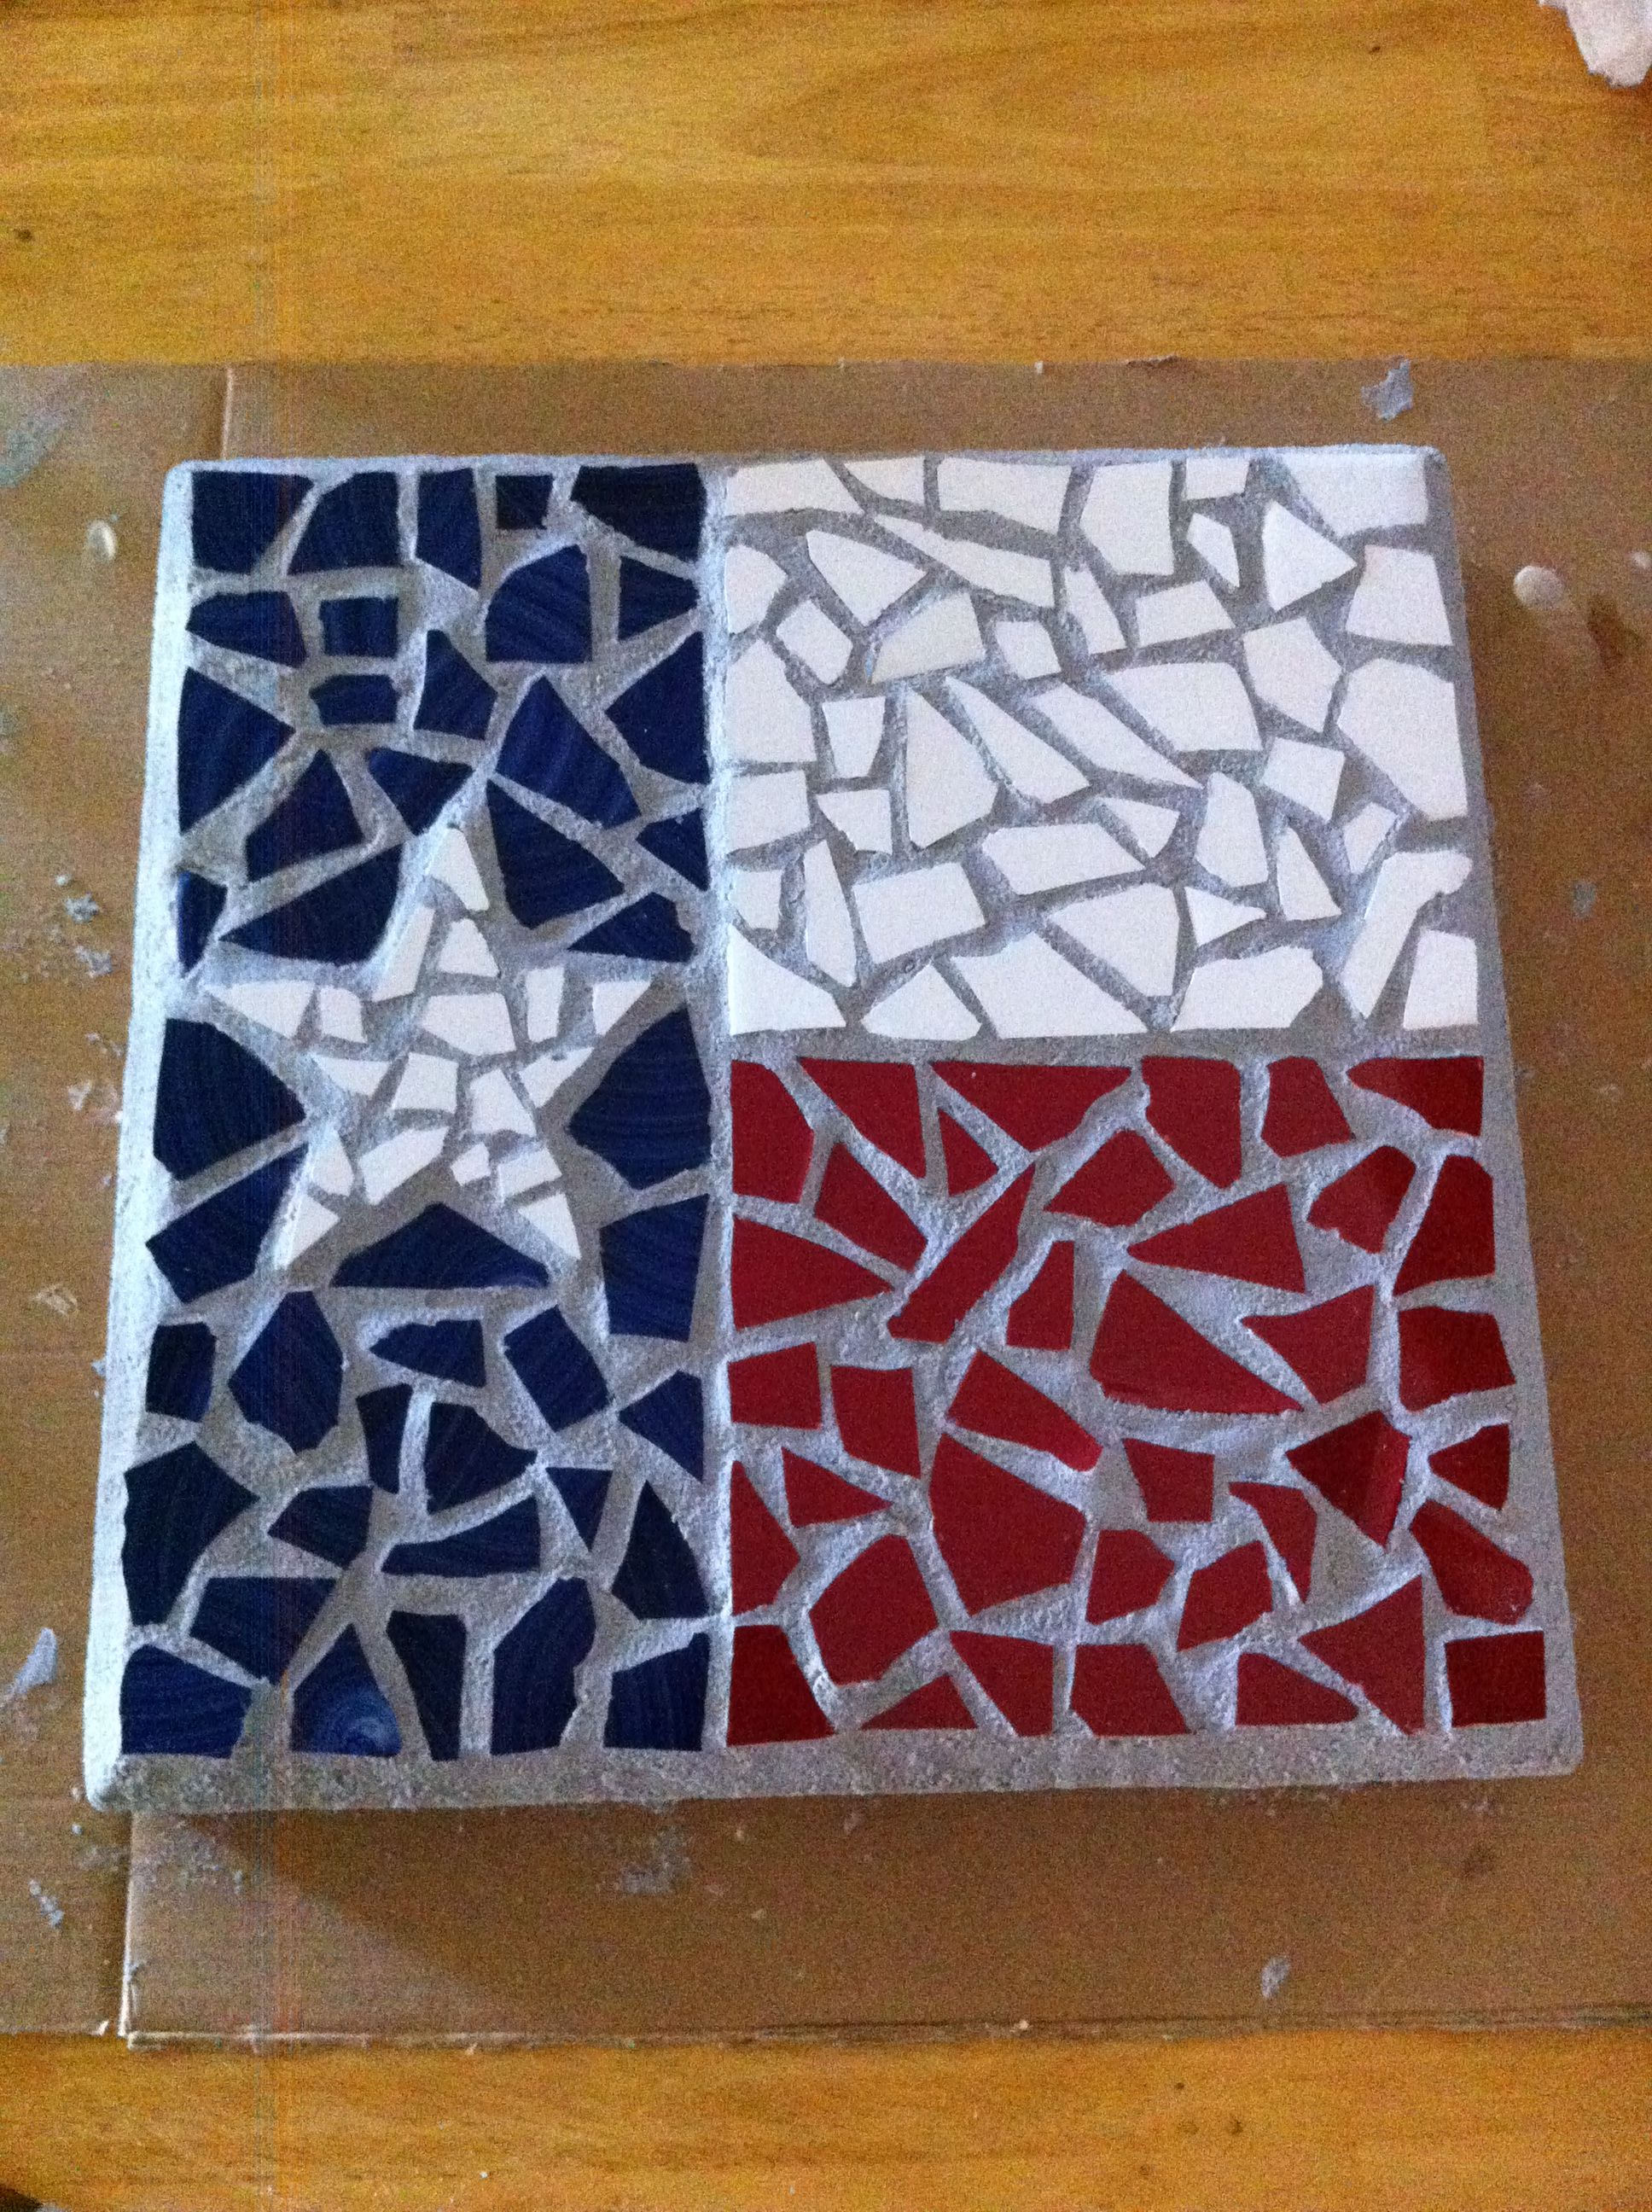 Texas flag mosaic stepping stone | Glass and Tile | Pinterest ...